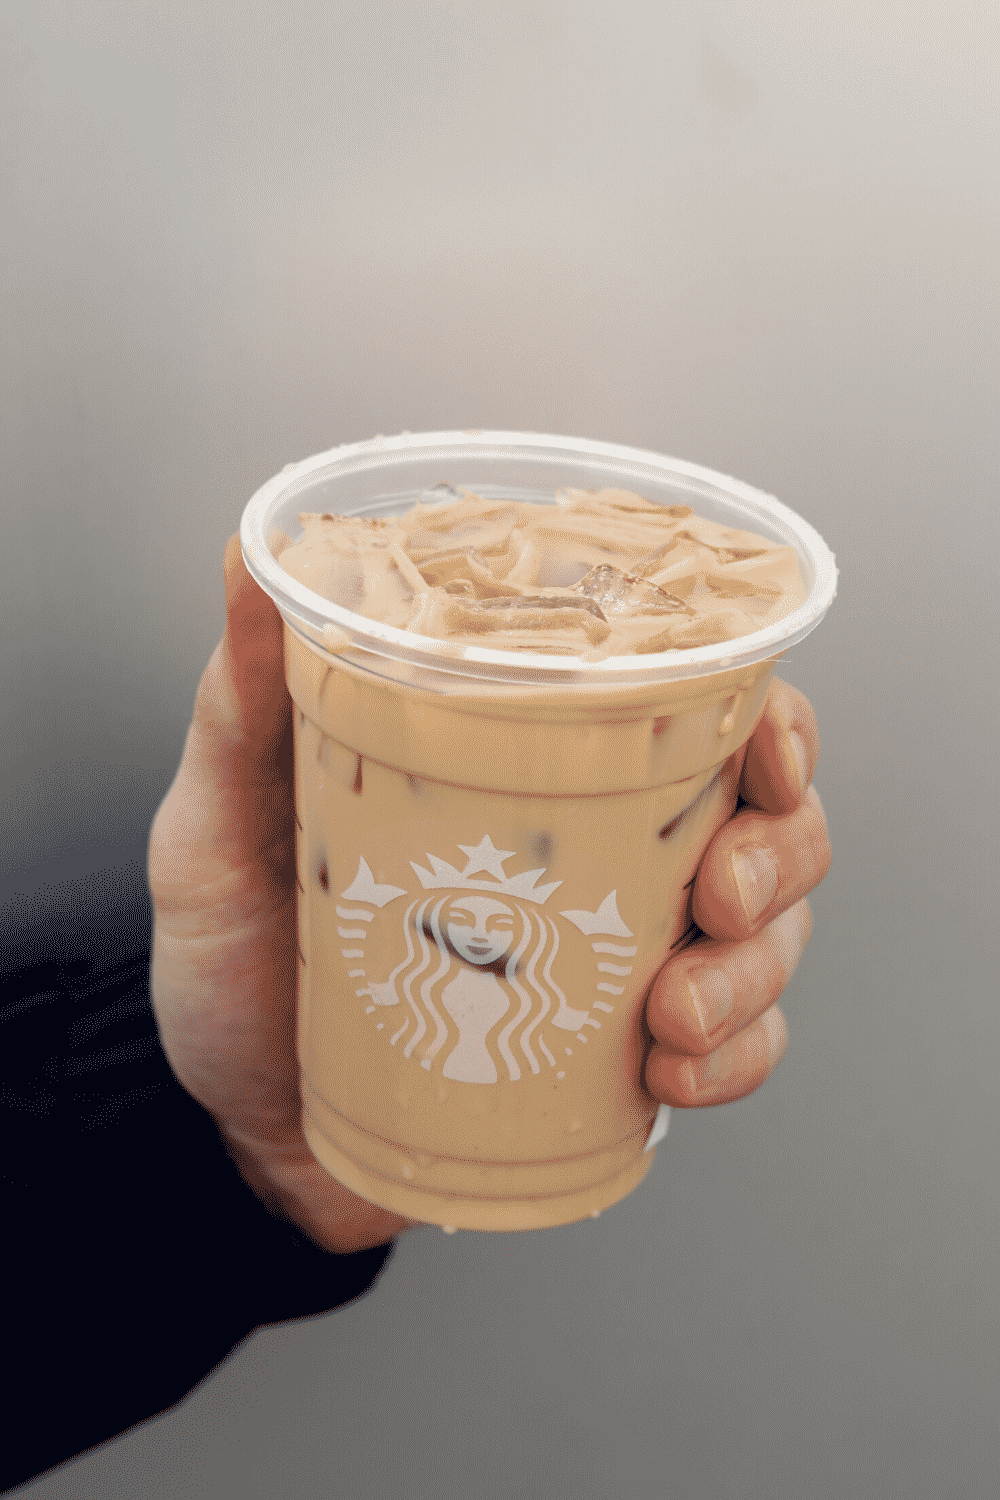 A hand holding a cup of Starbucks vegan iced cinnamon dolce latte.